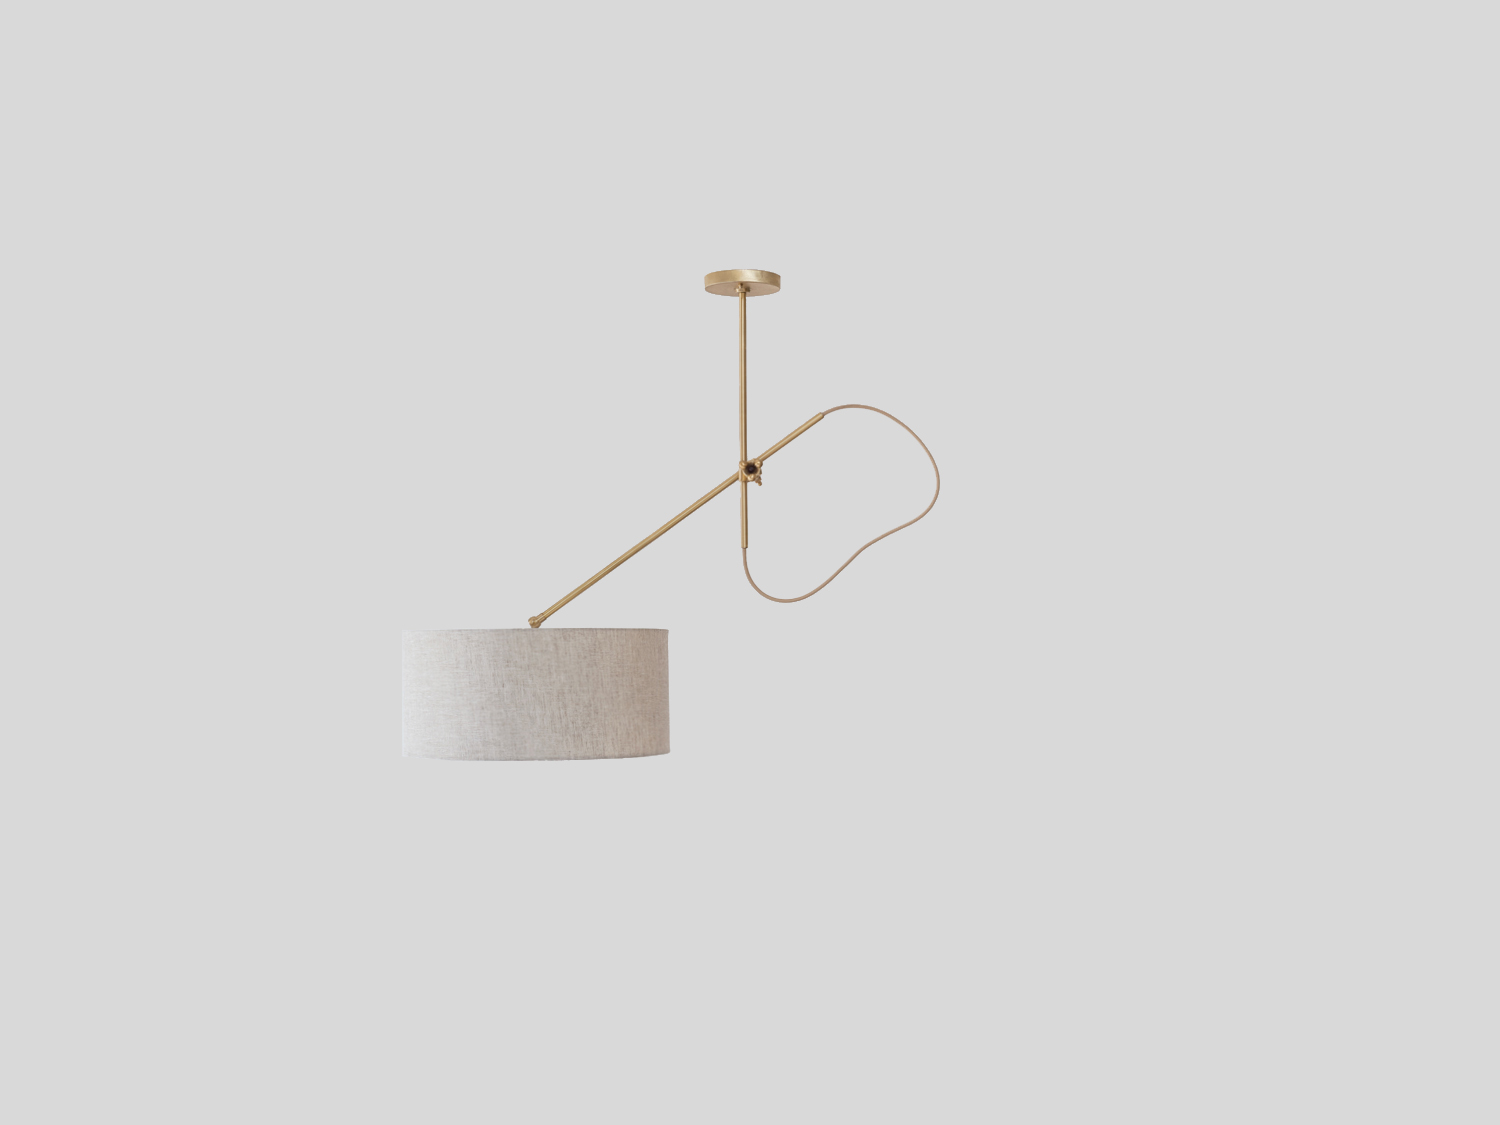 Brass-Shaded-Pendant_Angled